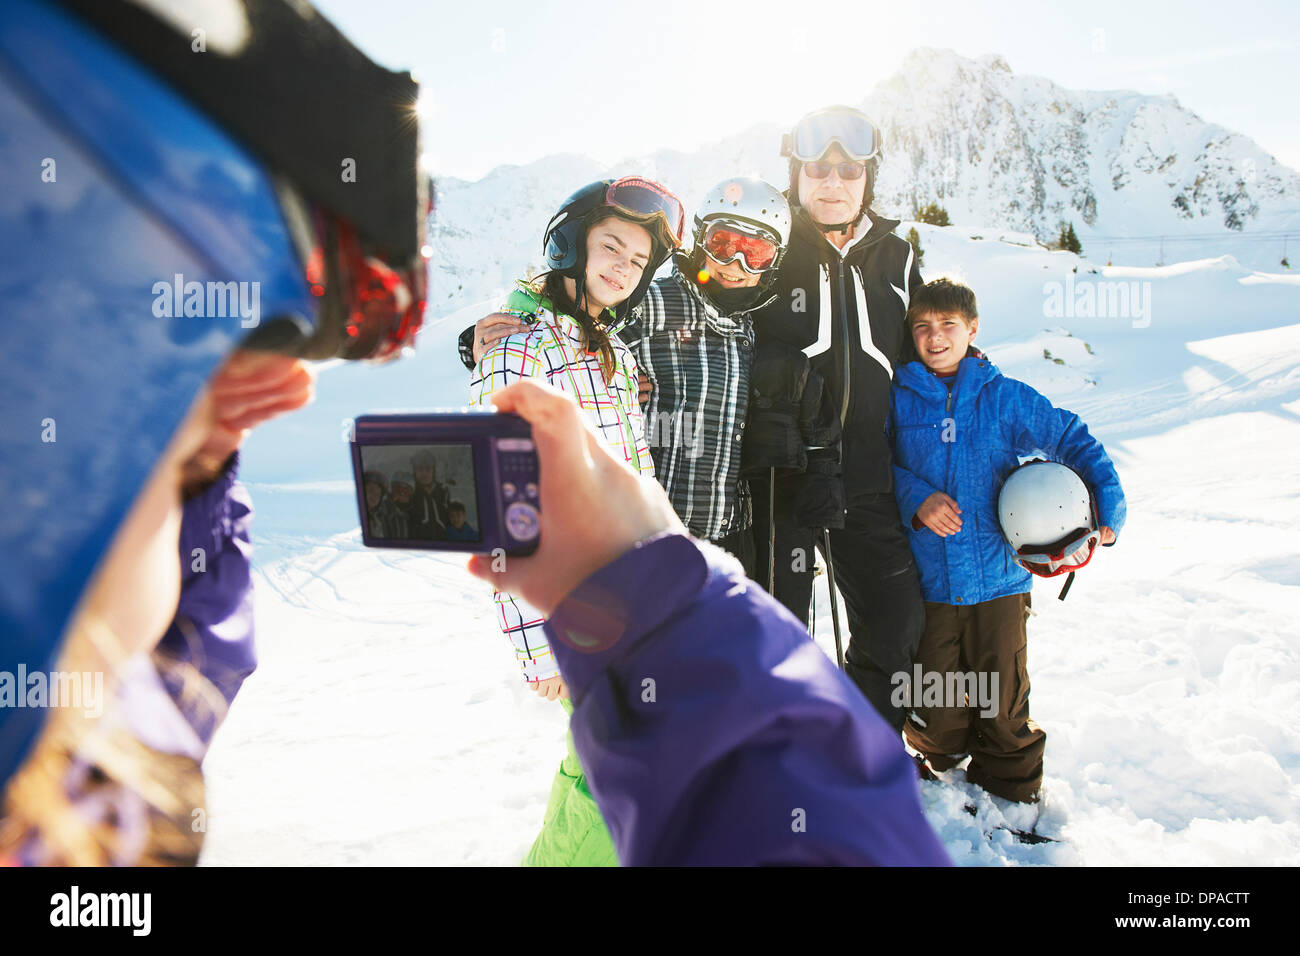 Girl photographing family, Les Arcs, Haute-Savoie, France - Stock Image